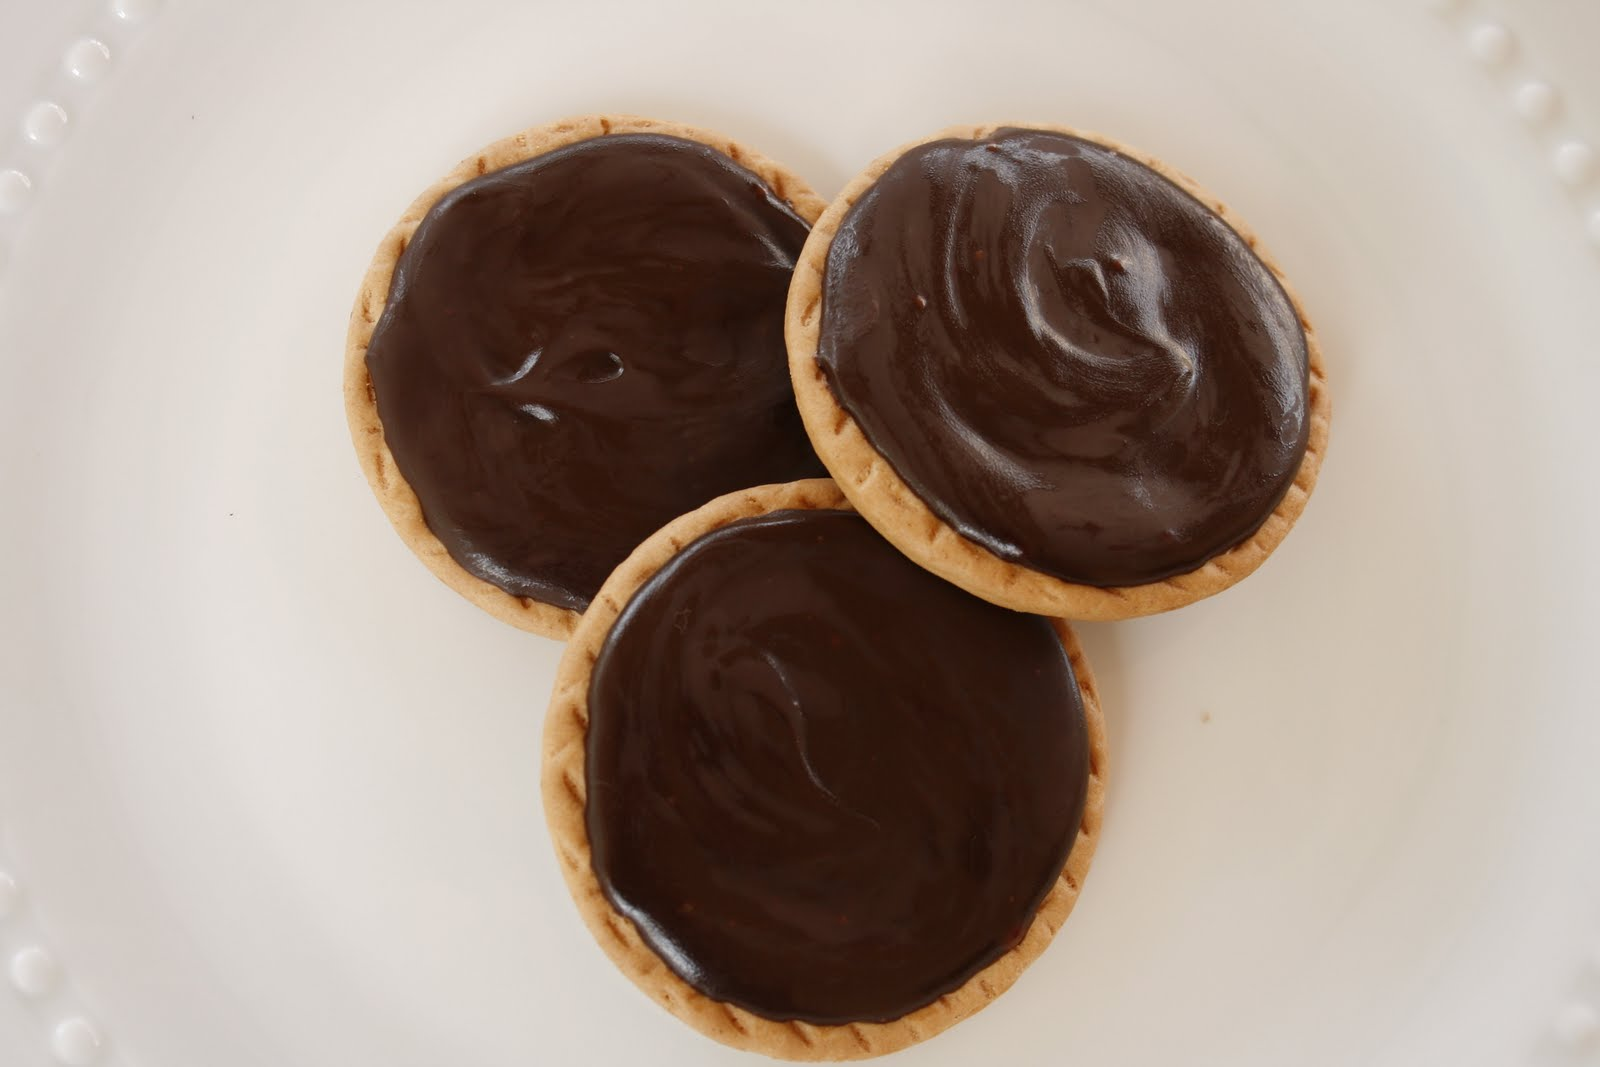 Laura's Sweet Spot: Royal Chocolate Ganache Glazed Biscuits